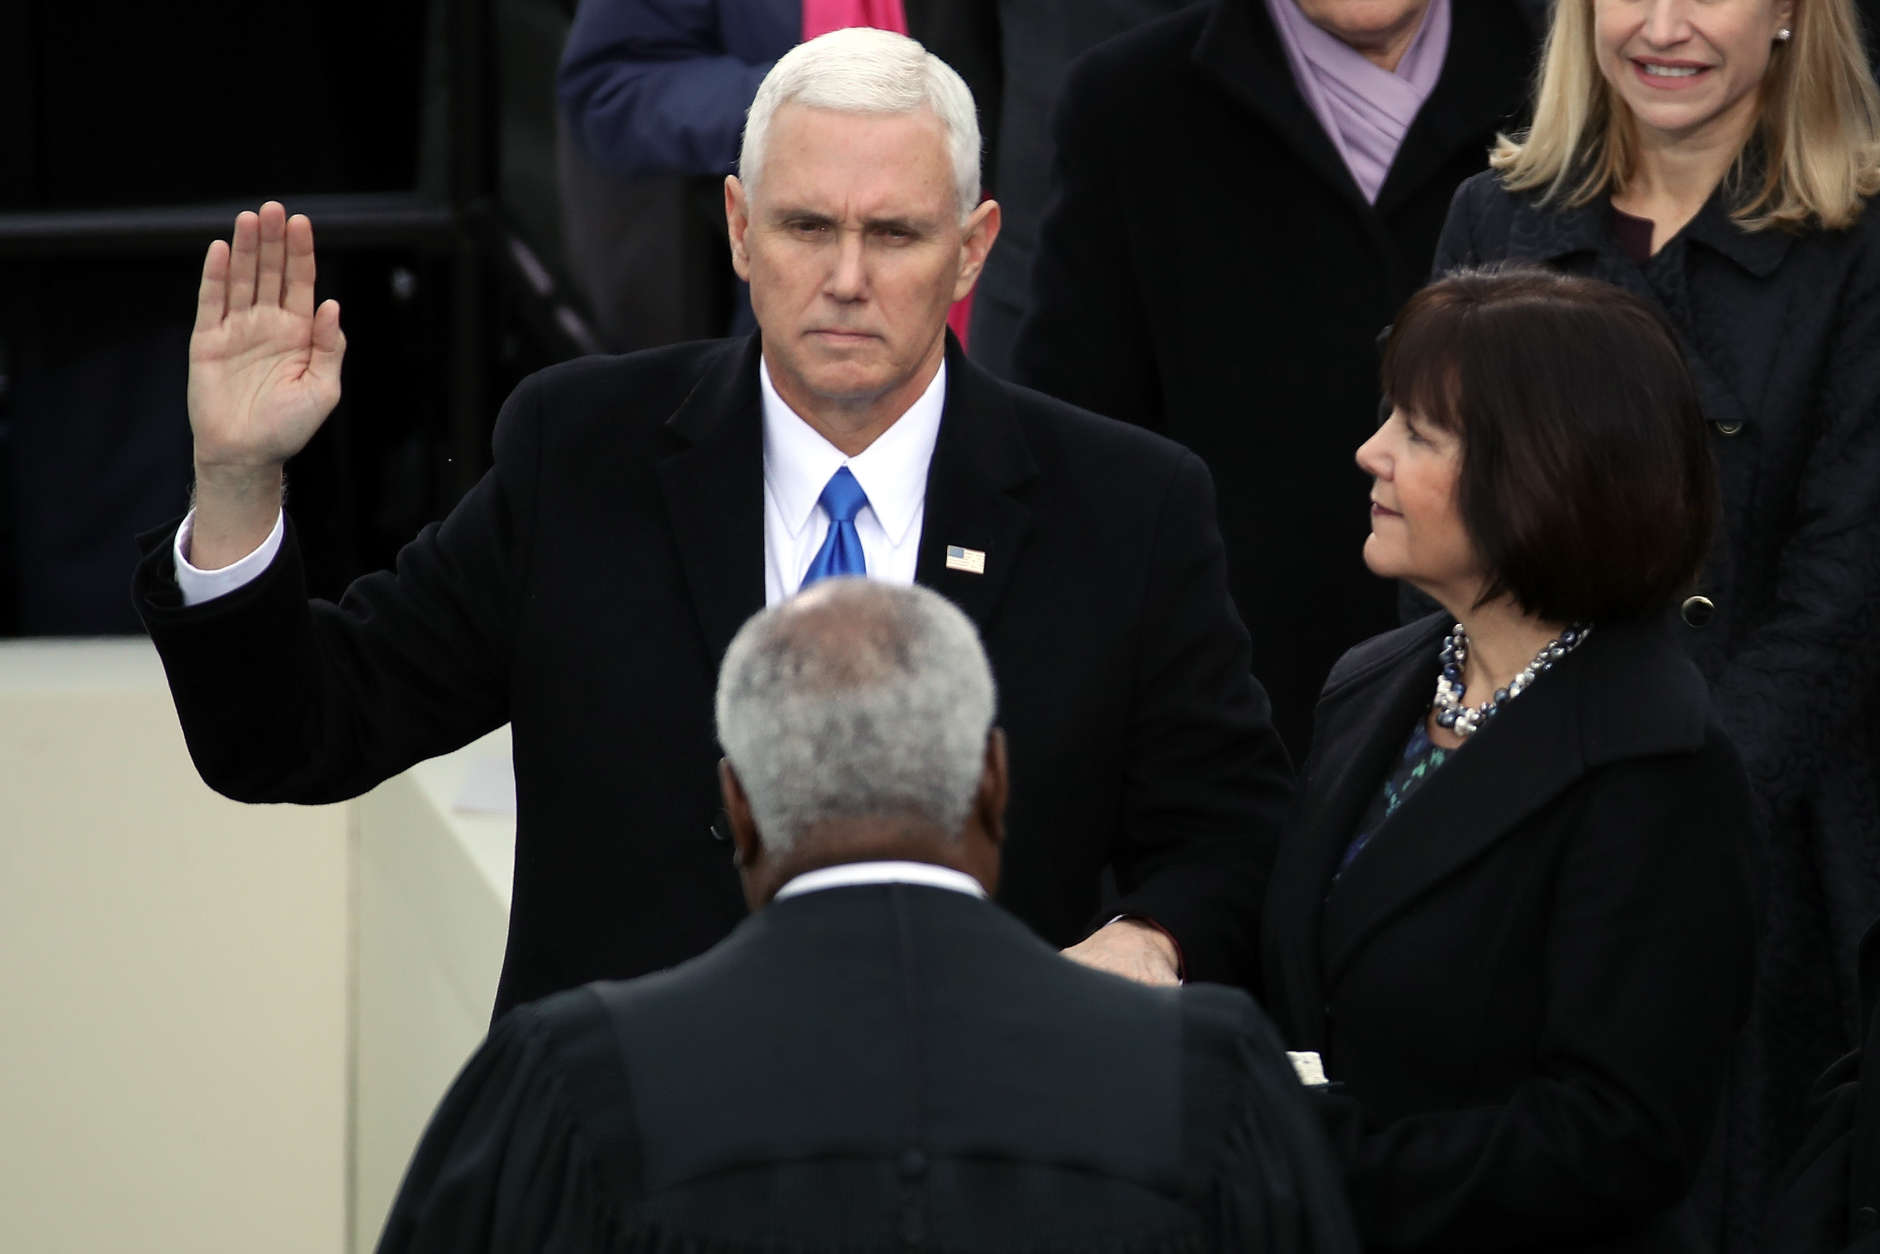 WASHINGTON, DC - JANUARY 20:  U.S. Vice President Mike Pence takes the oath of office on the West Front of the U.S. Capitol on January 20, 2017 in Washington, DC. In today's inauguration ceremony Donald J. Trump becomes the 45th president of the United States.  (Photo by Drew Angerer/Getty Images)